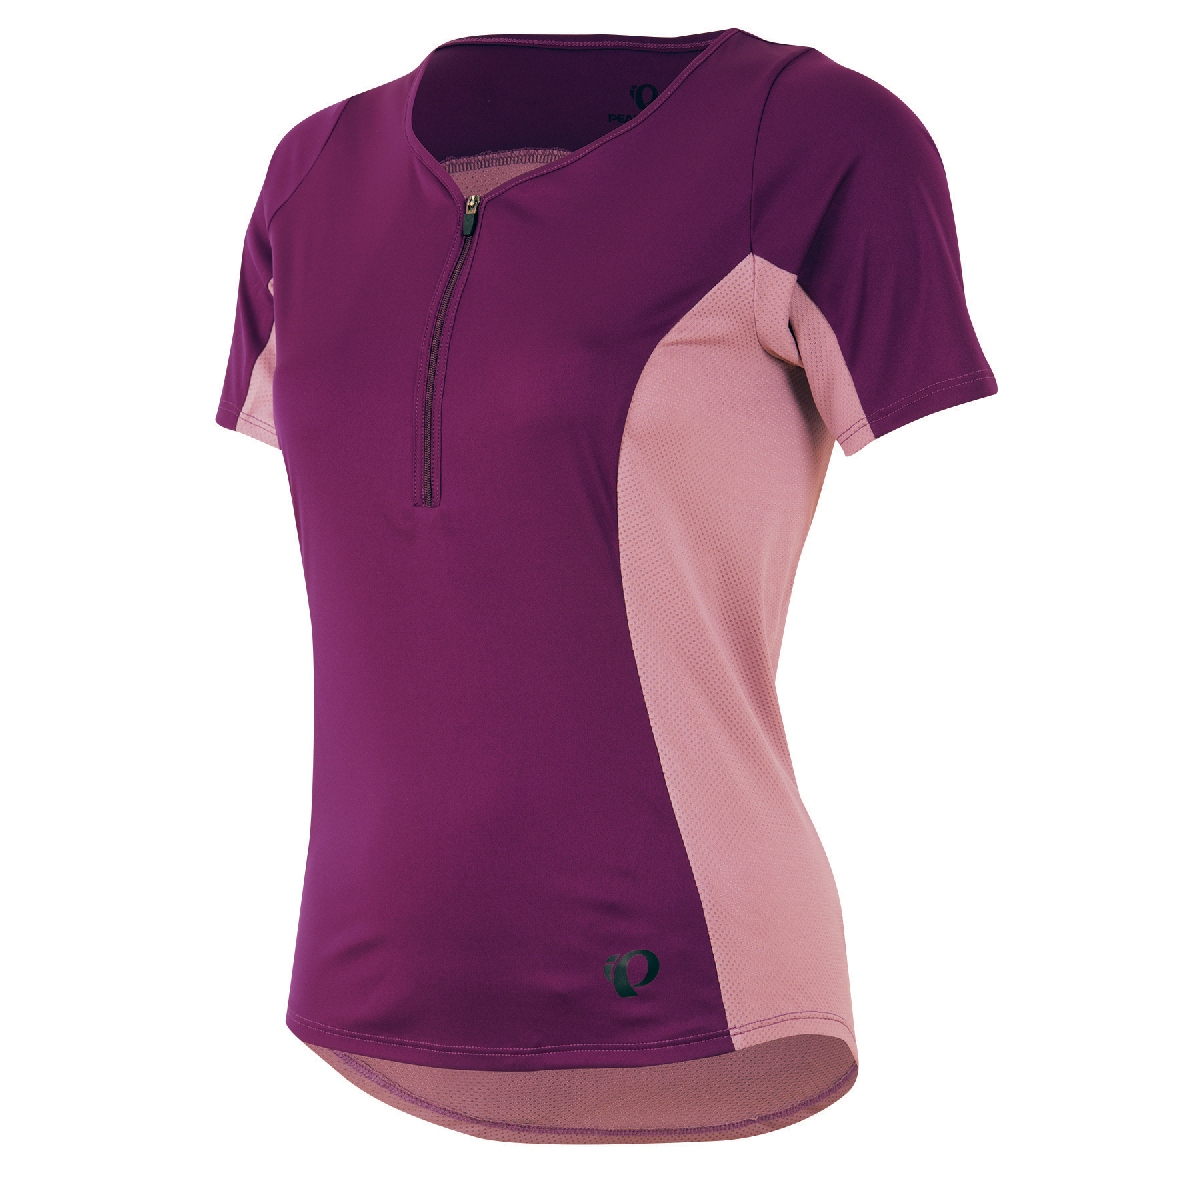 Pearl Izumi Canyon Short Sleeve Cycling Jersey Women's Size XXL DarkPurple U.S.A. & Canada